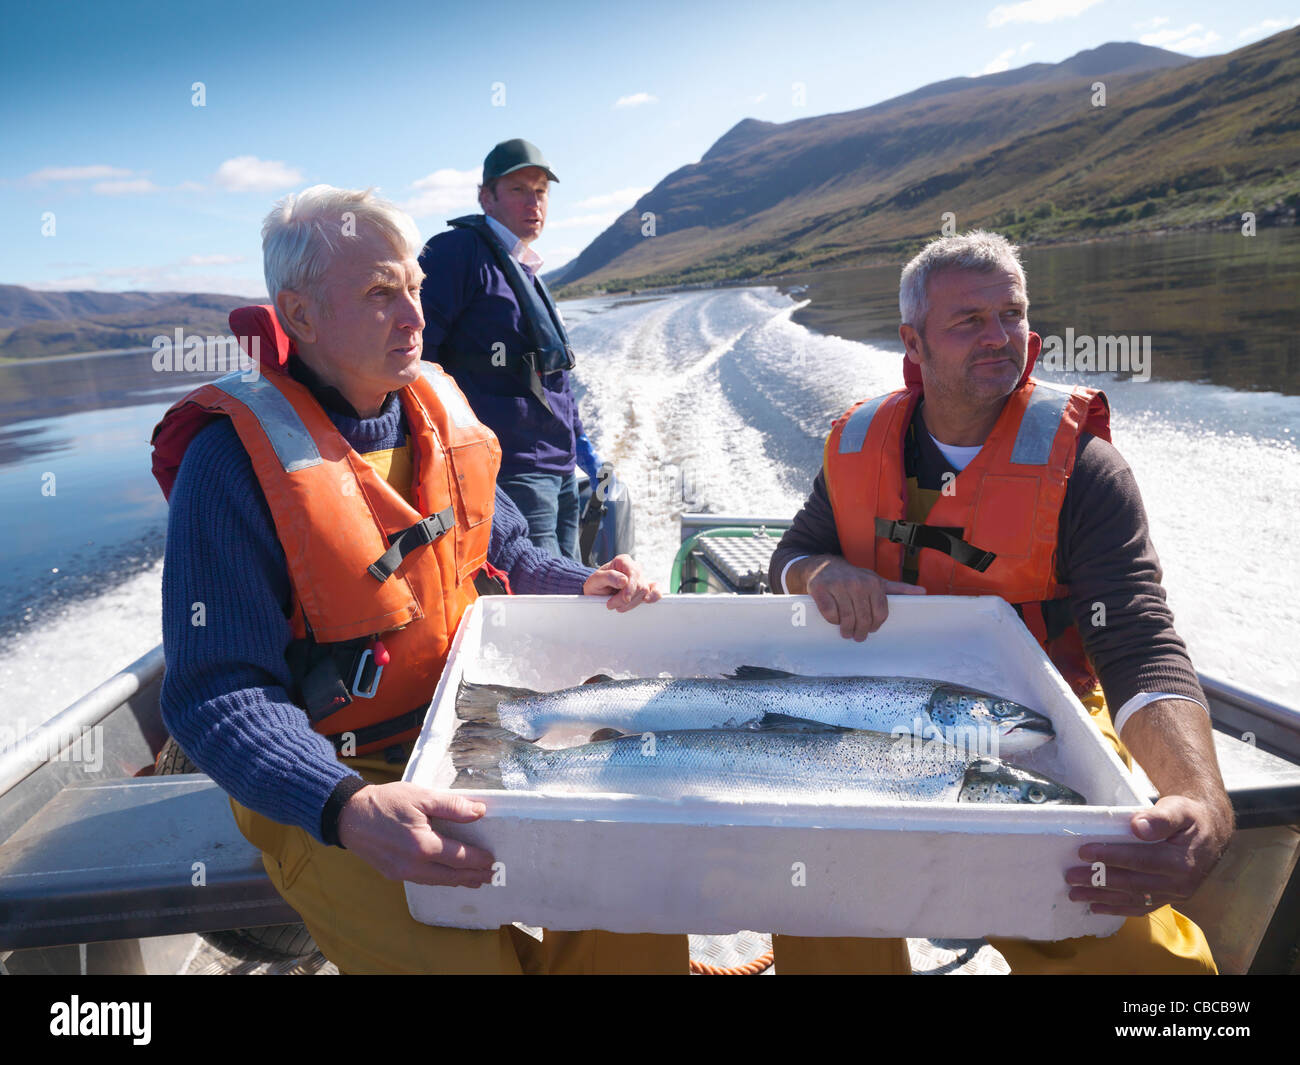 Fishermen with catch of the day on boat - Stock Image